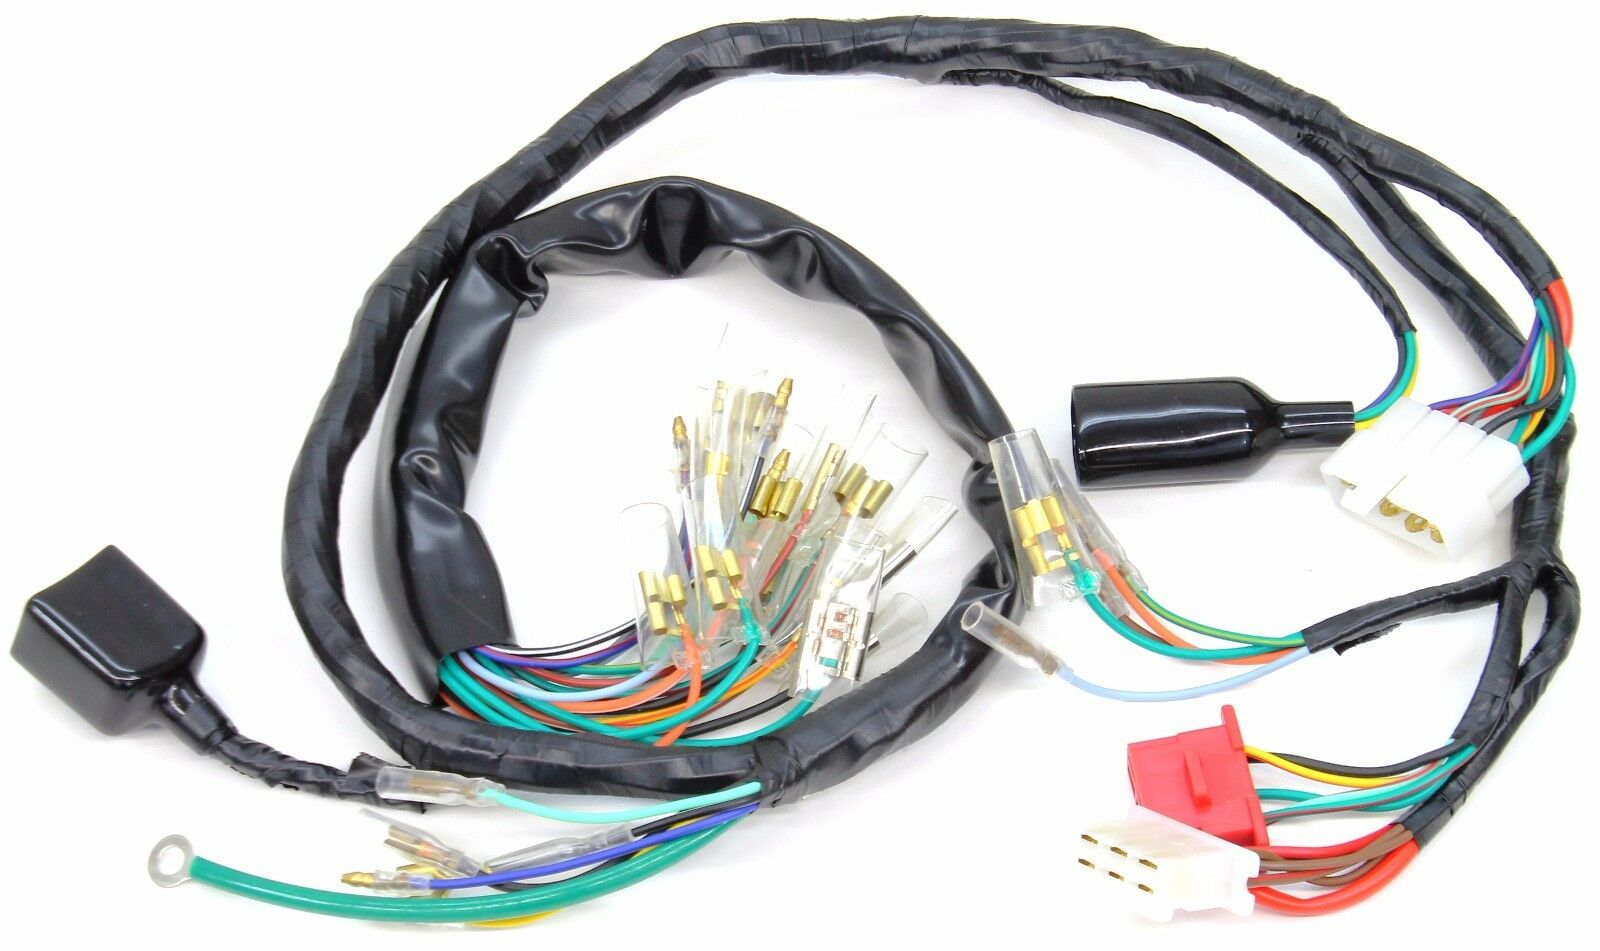 [SCHEMATICS_4FD]  Honda Cb550 CB 550 K Main Electrical Wiring Harness Wires Cables 1974 1975  for sale online | eBay | Honda Cb550 Wiring Harness |  | eBay